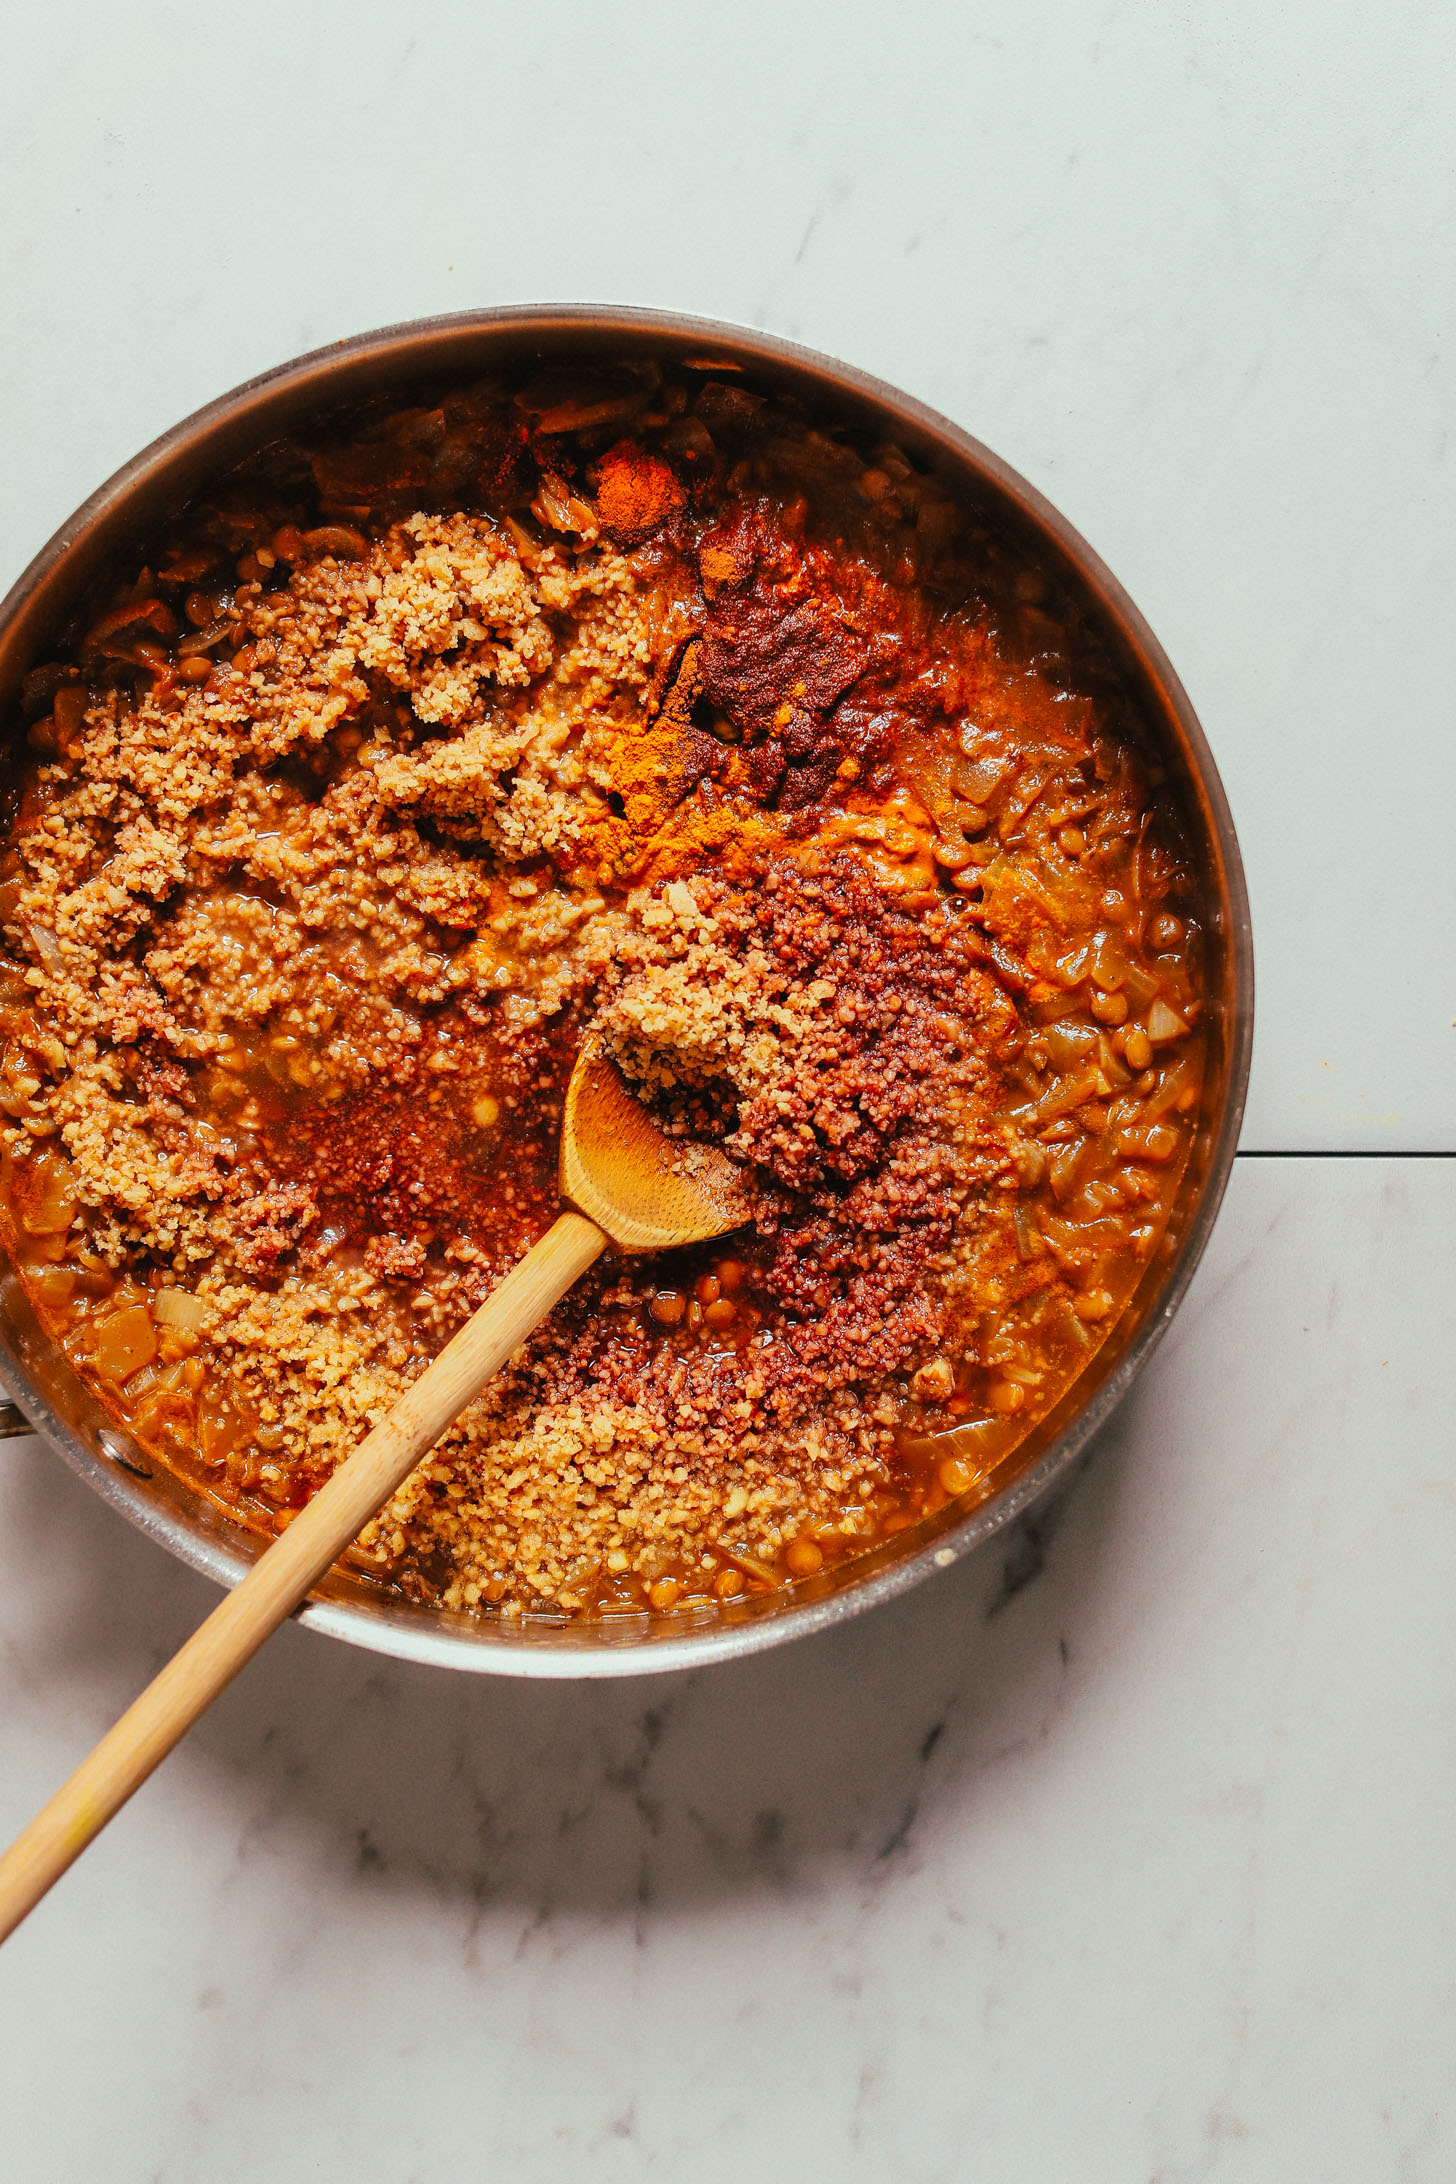 Stirring a skillet of our satisfying vegan Lentil Fesenjan recipe